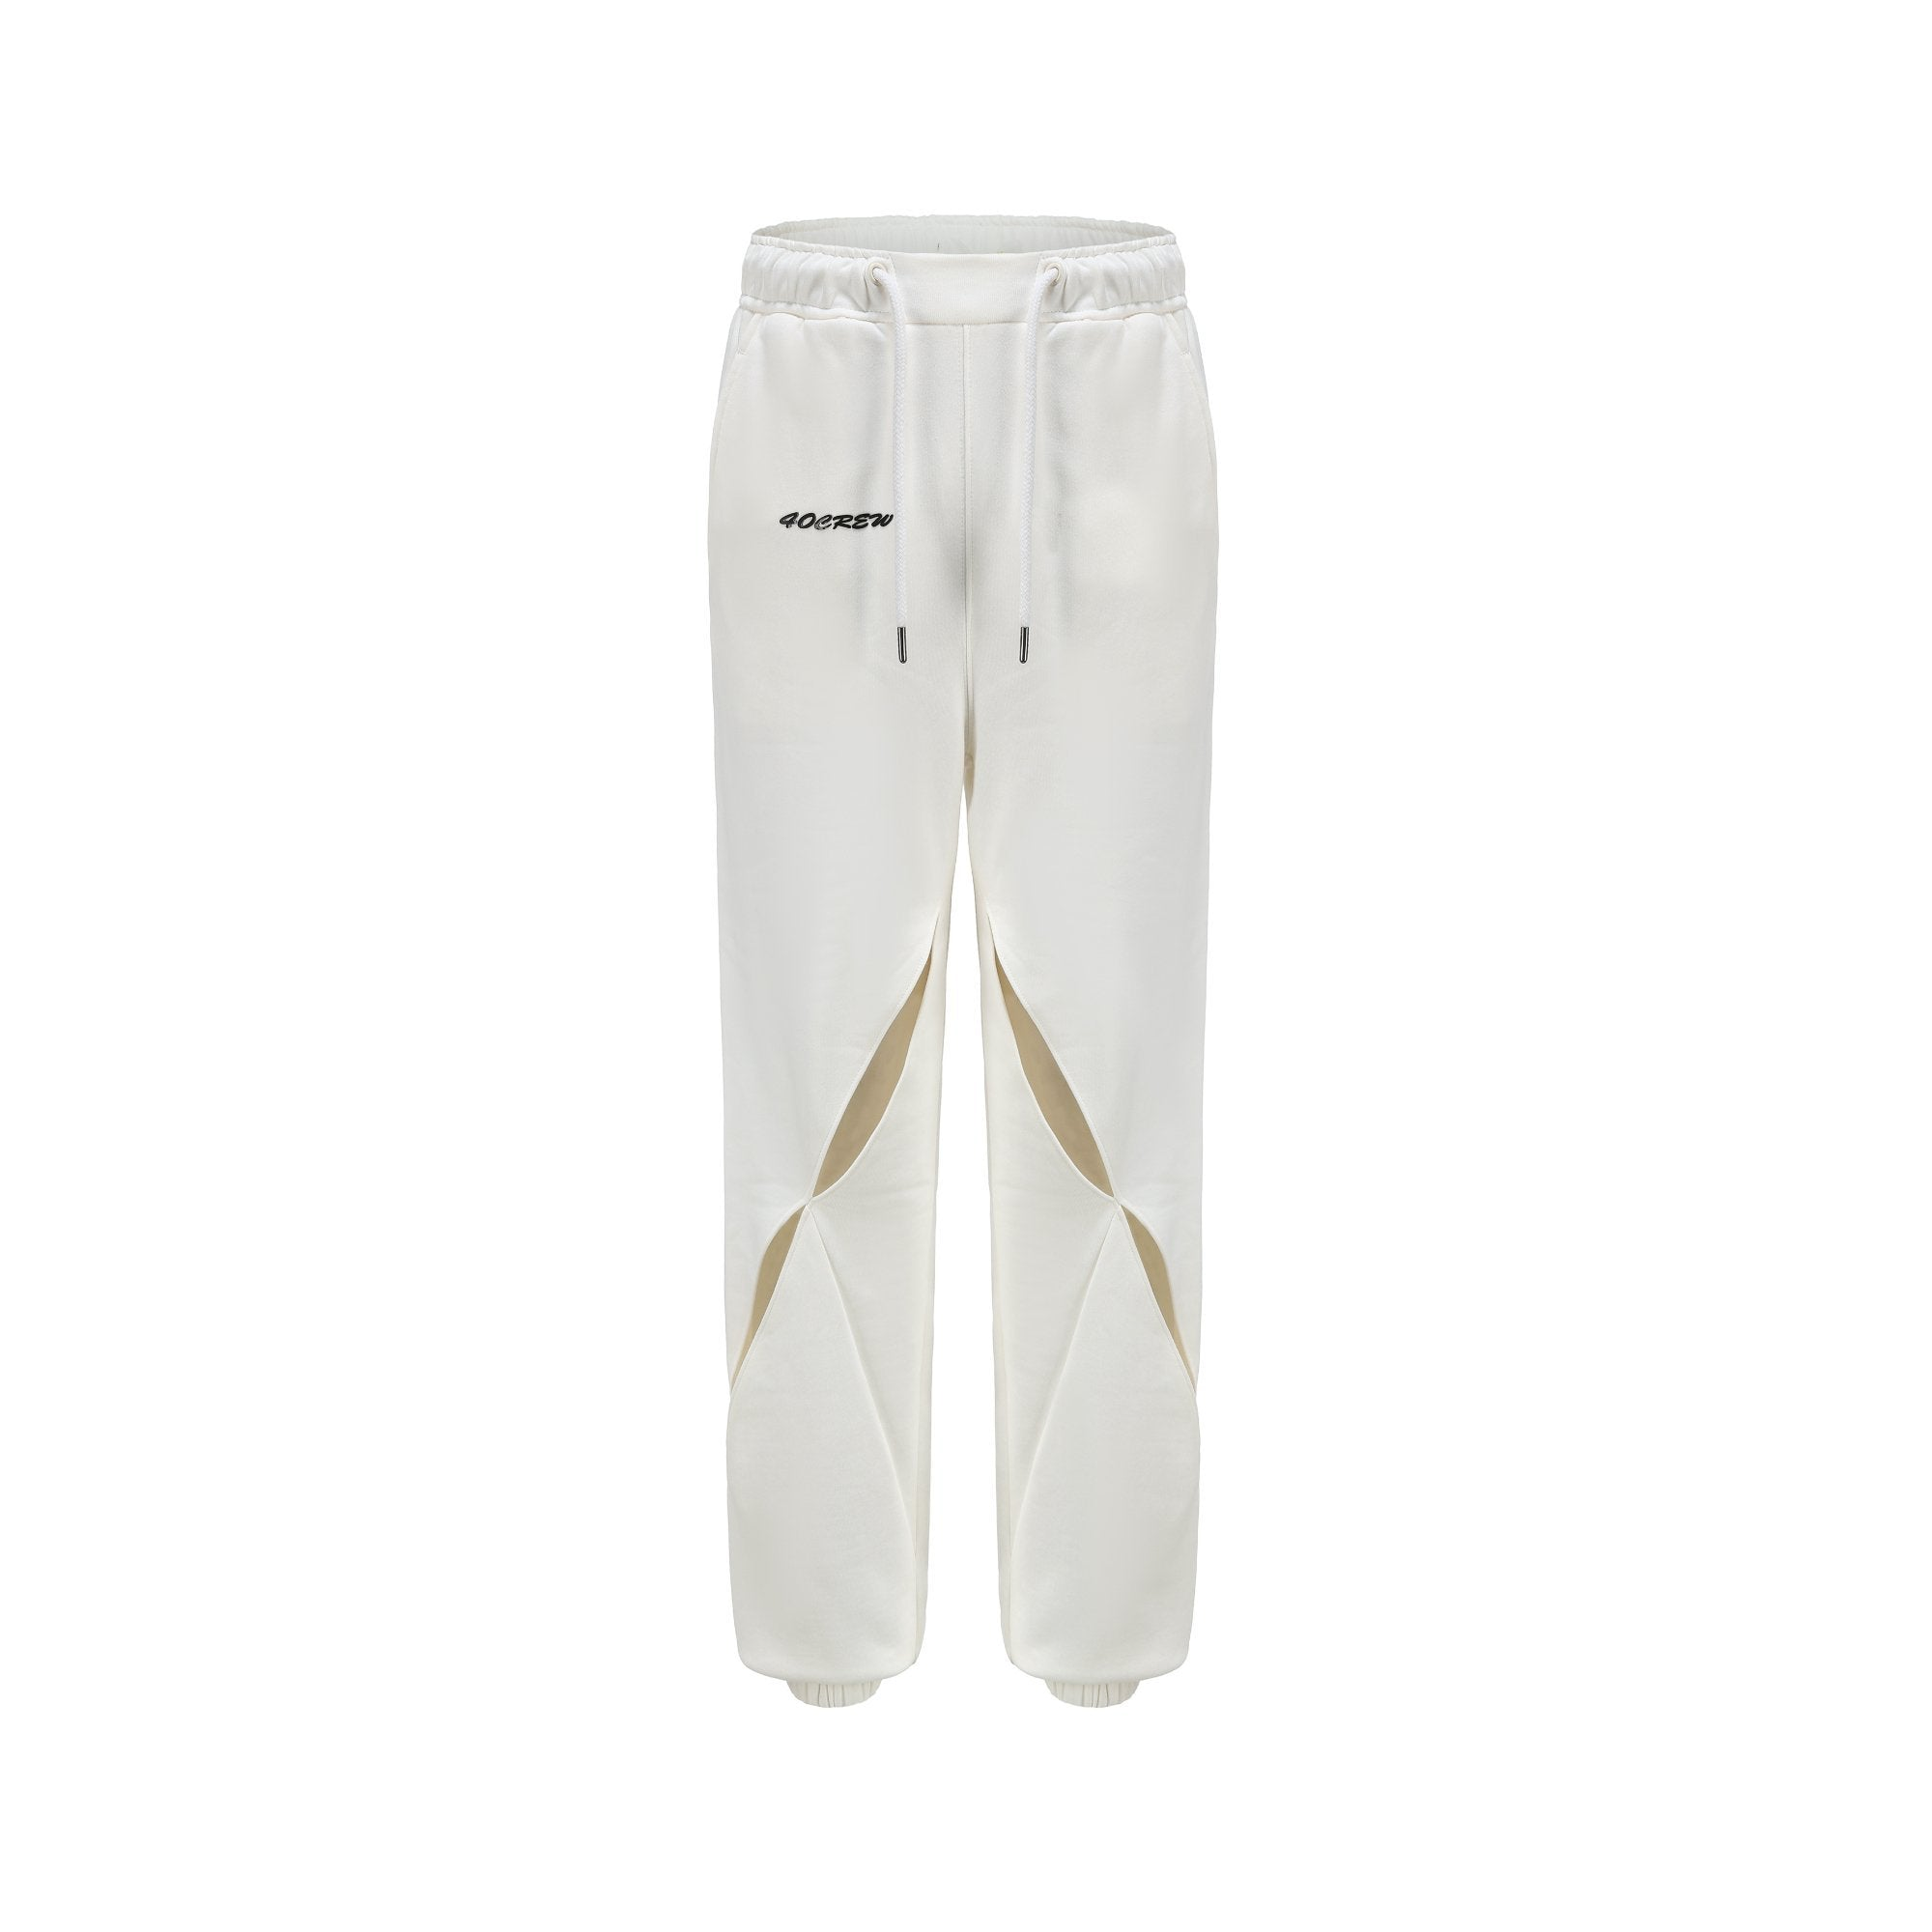 40 CREW White Split Track Pants | MADA IN CHINA